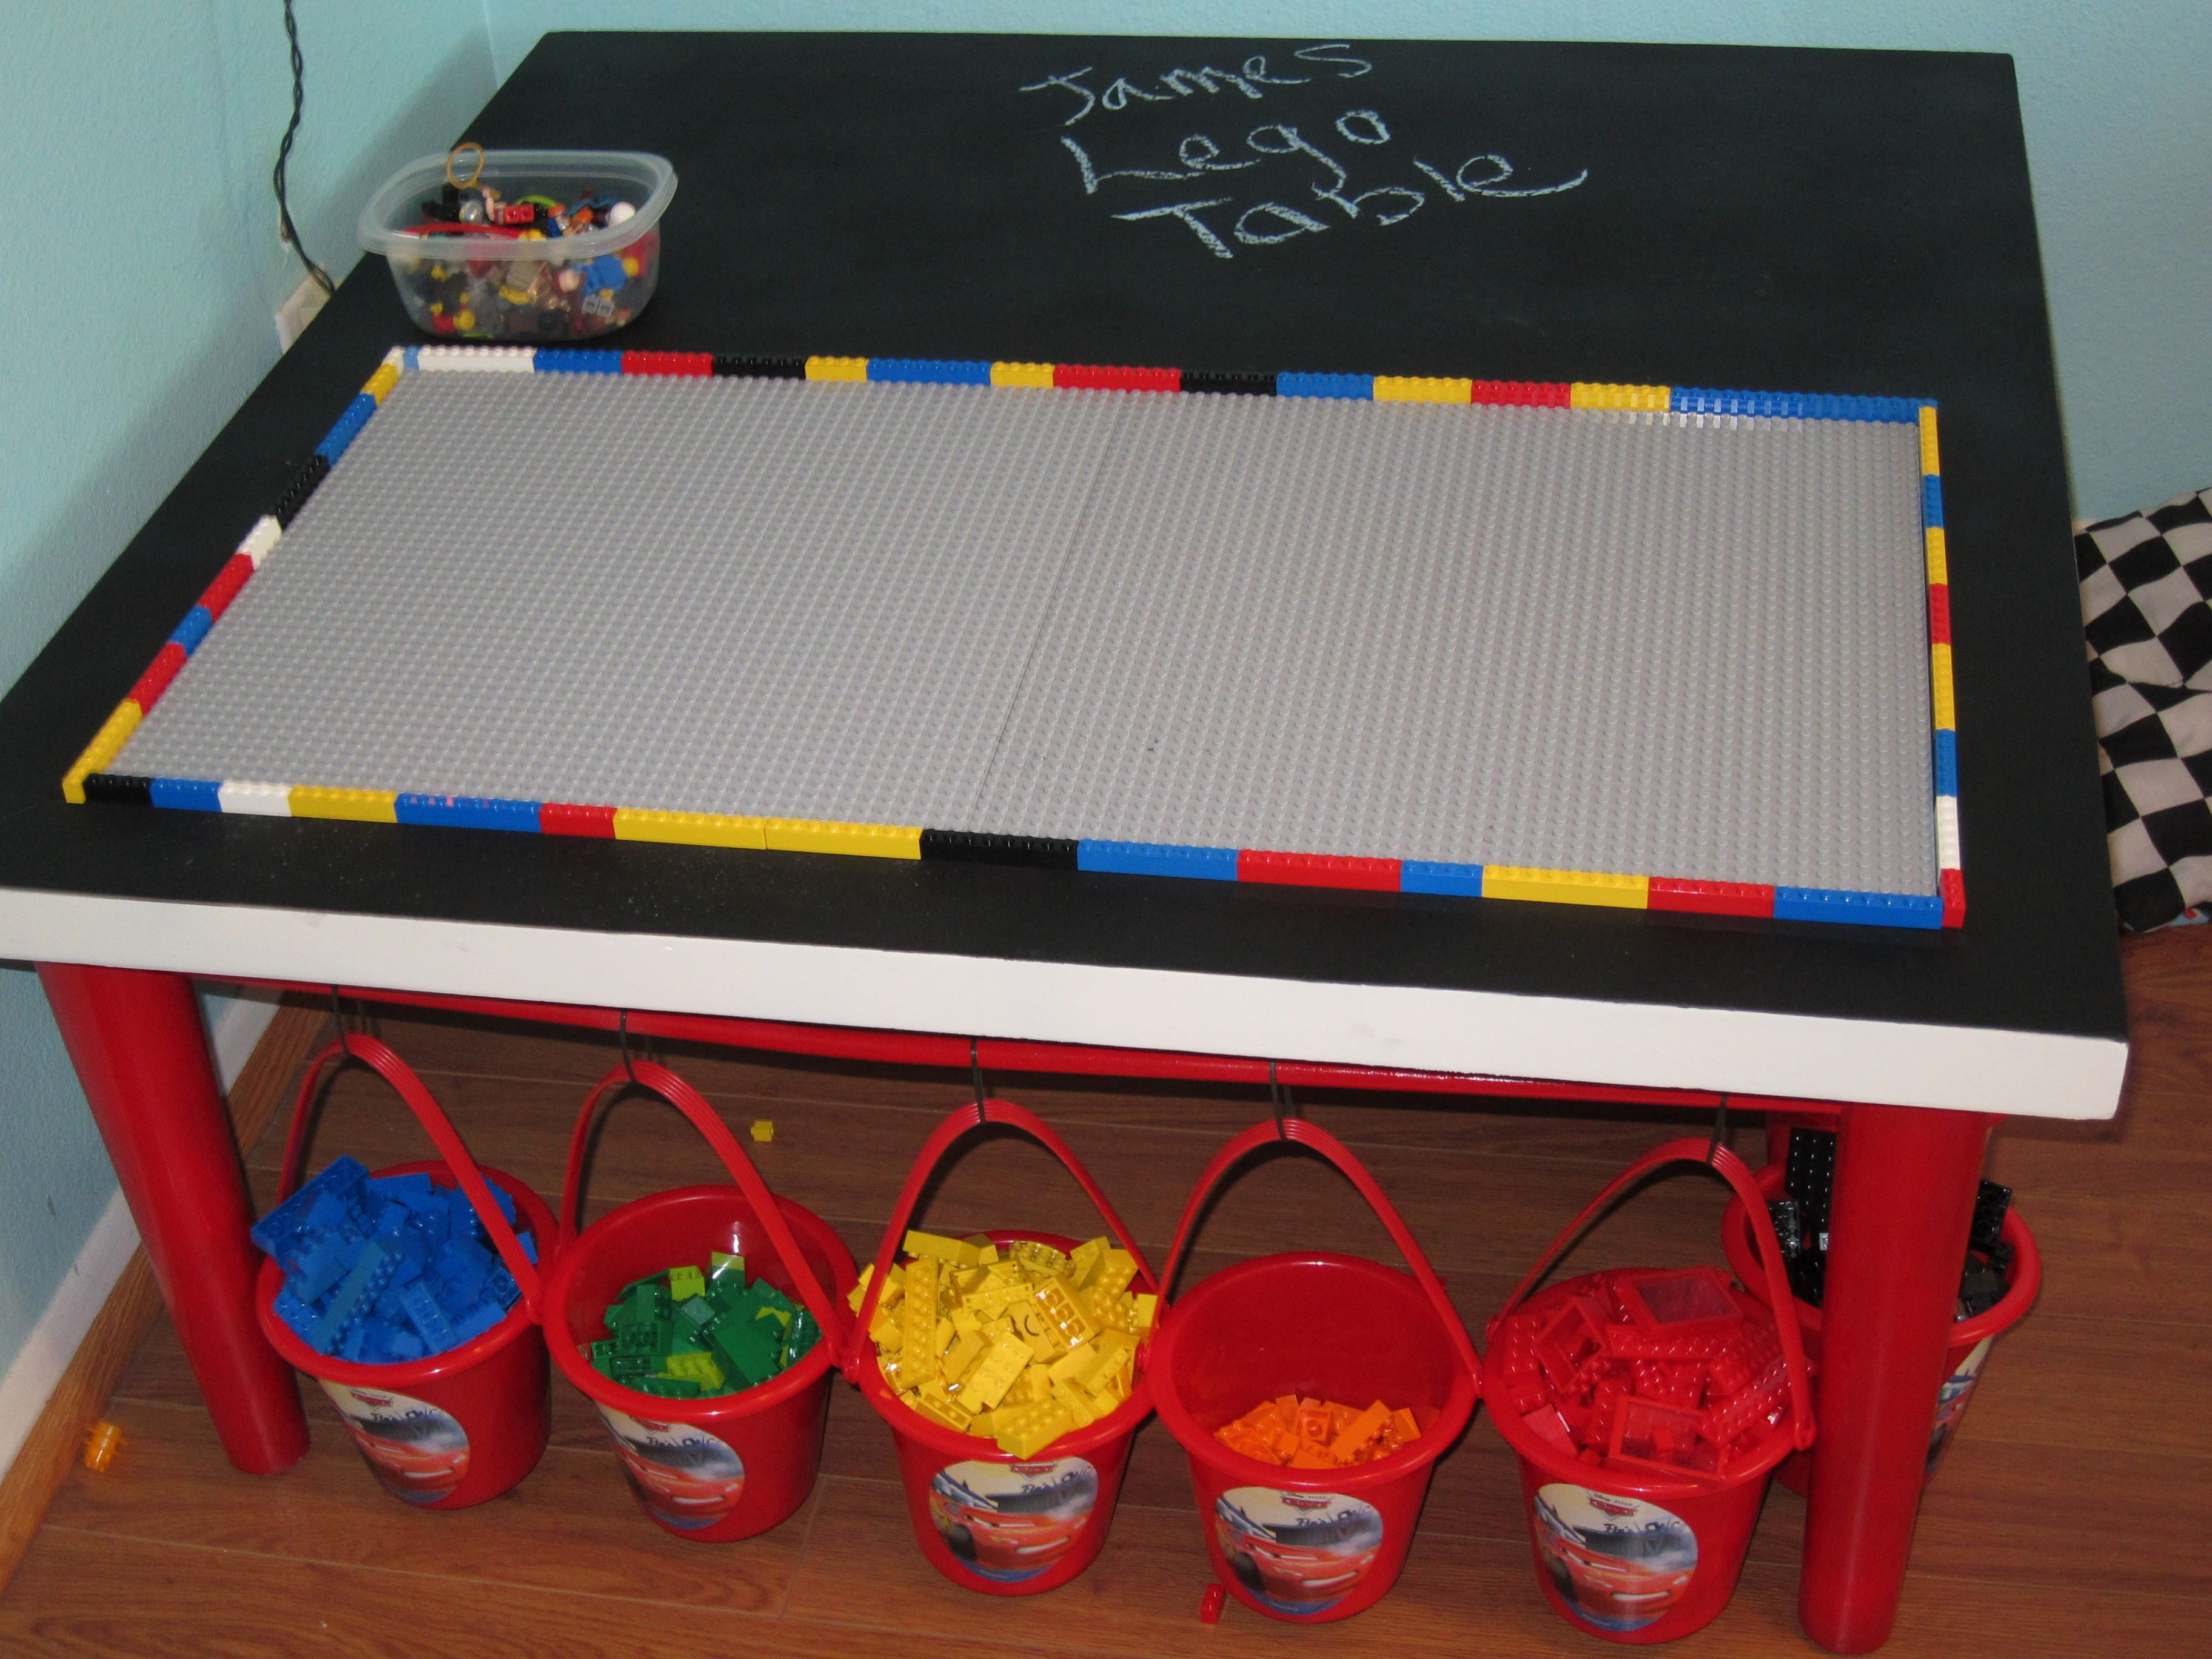 Diy lego coffee table - Diy Coffee Table Into A Lego Table I Easily And Cheaply Turned Our Old Coffee Into A Lego Play And Storage Table Spray Painted The Colors My So